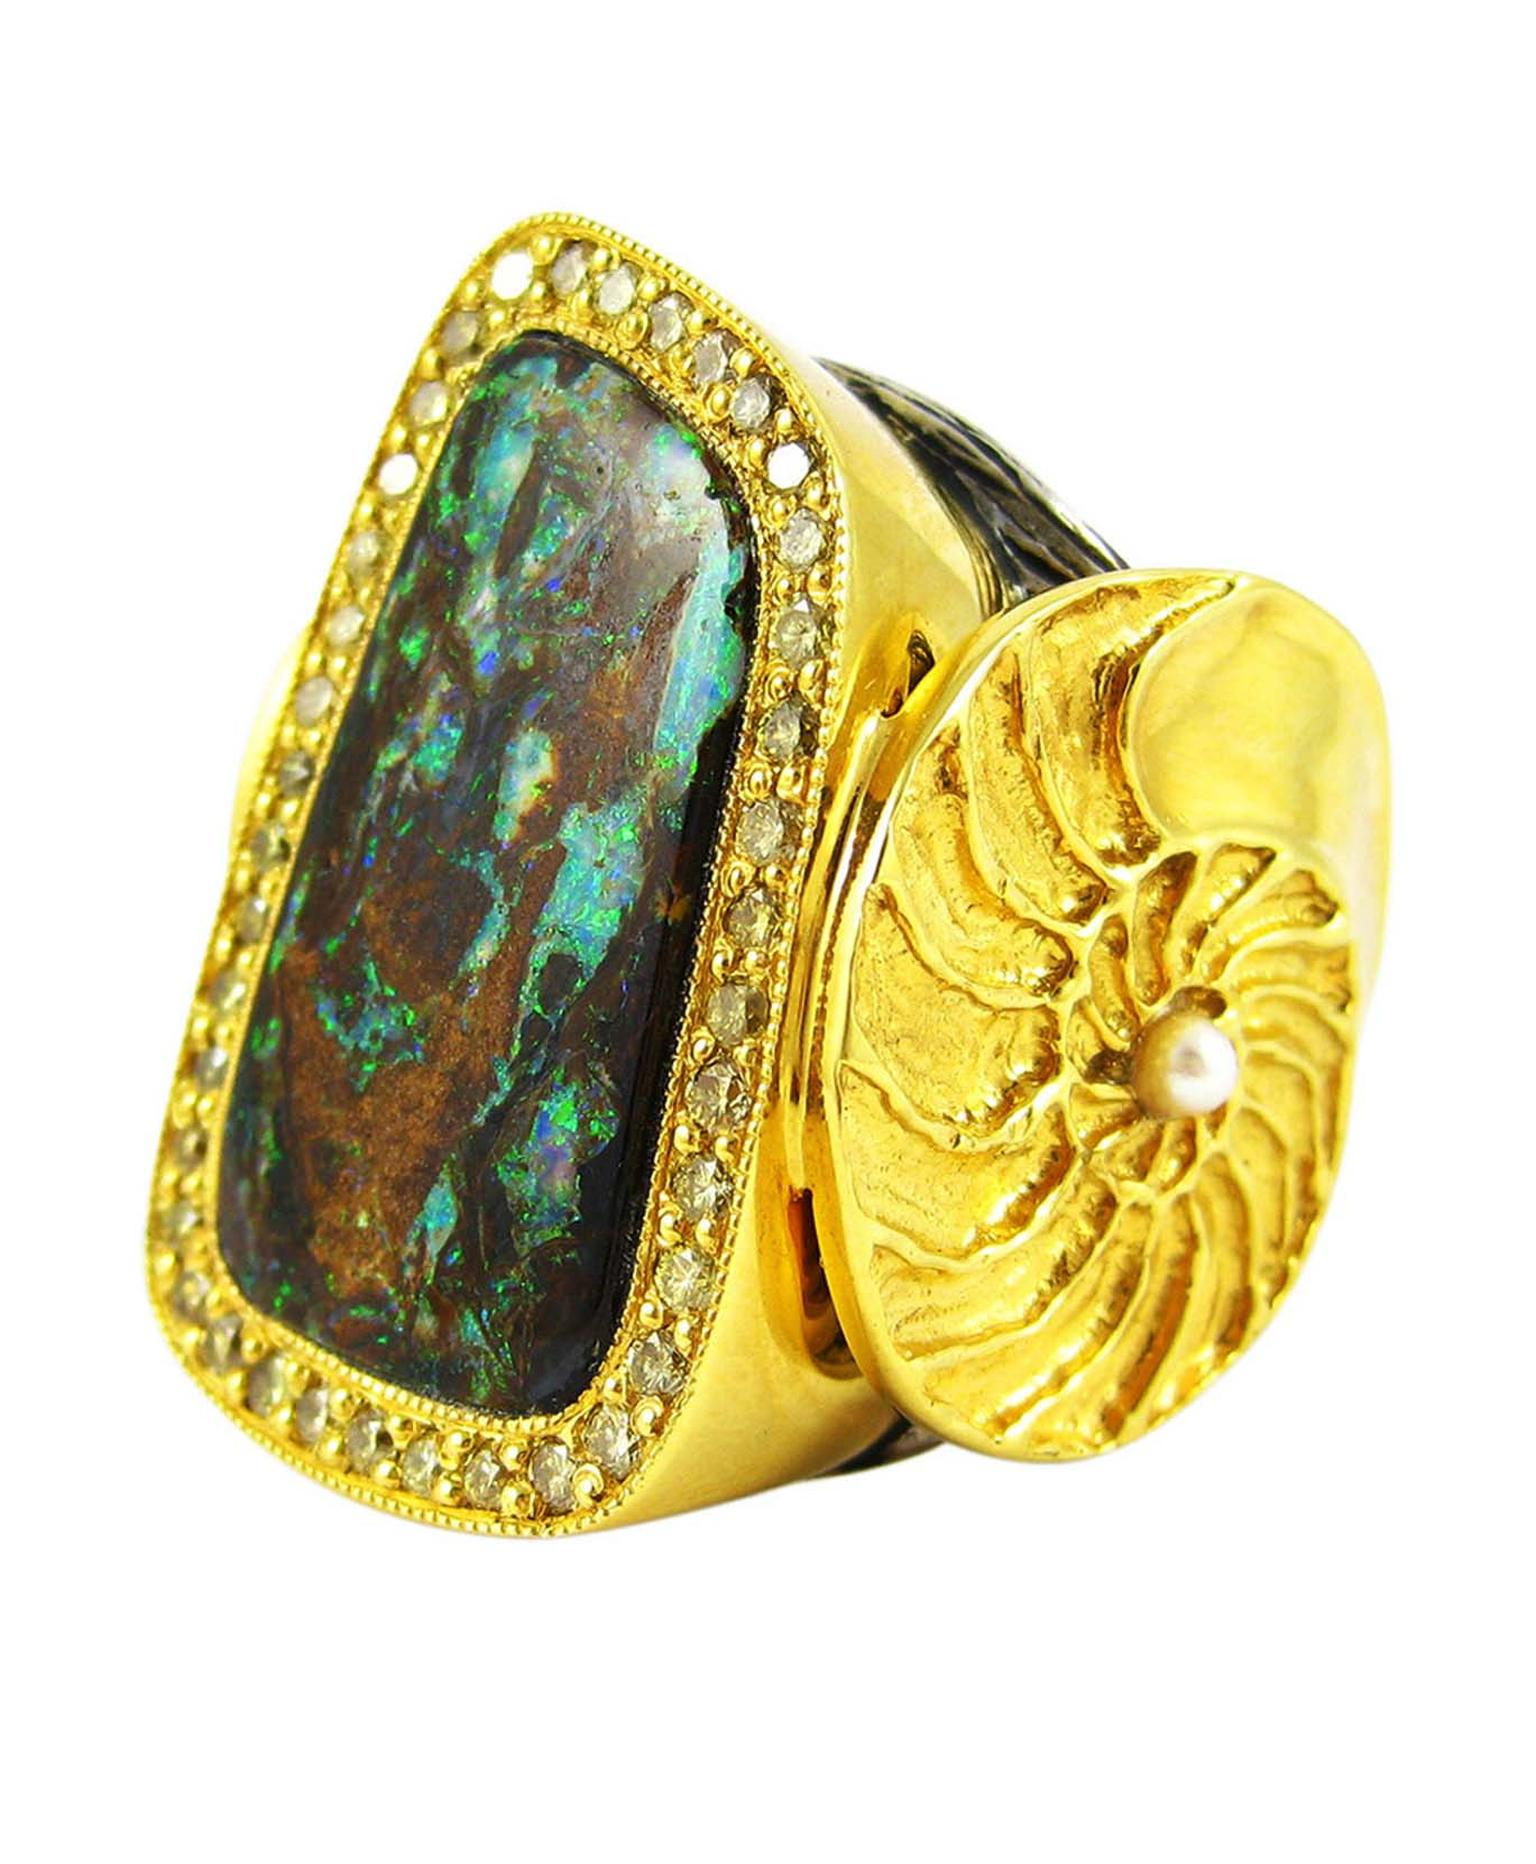 K. Brunini Objects Organique ring in gold and silver with an opal surrounded by diamonds.